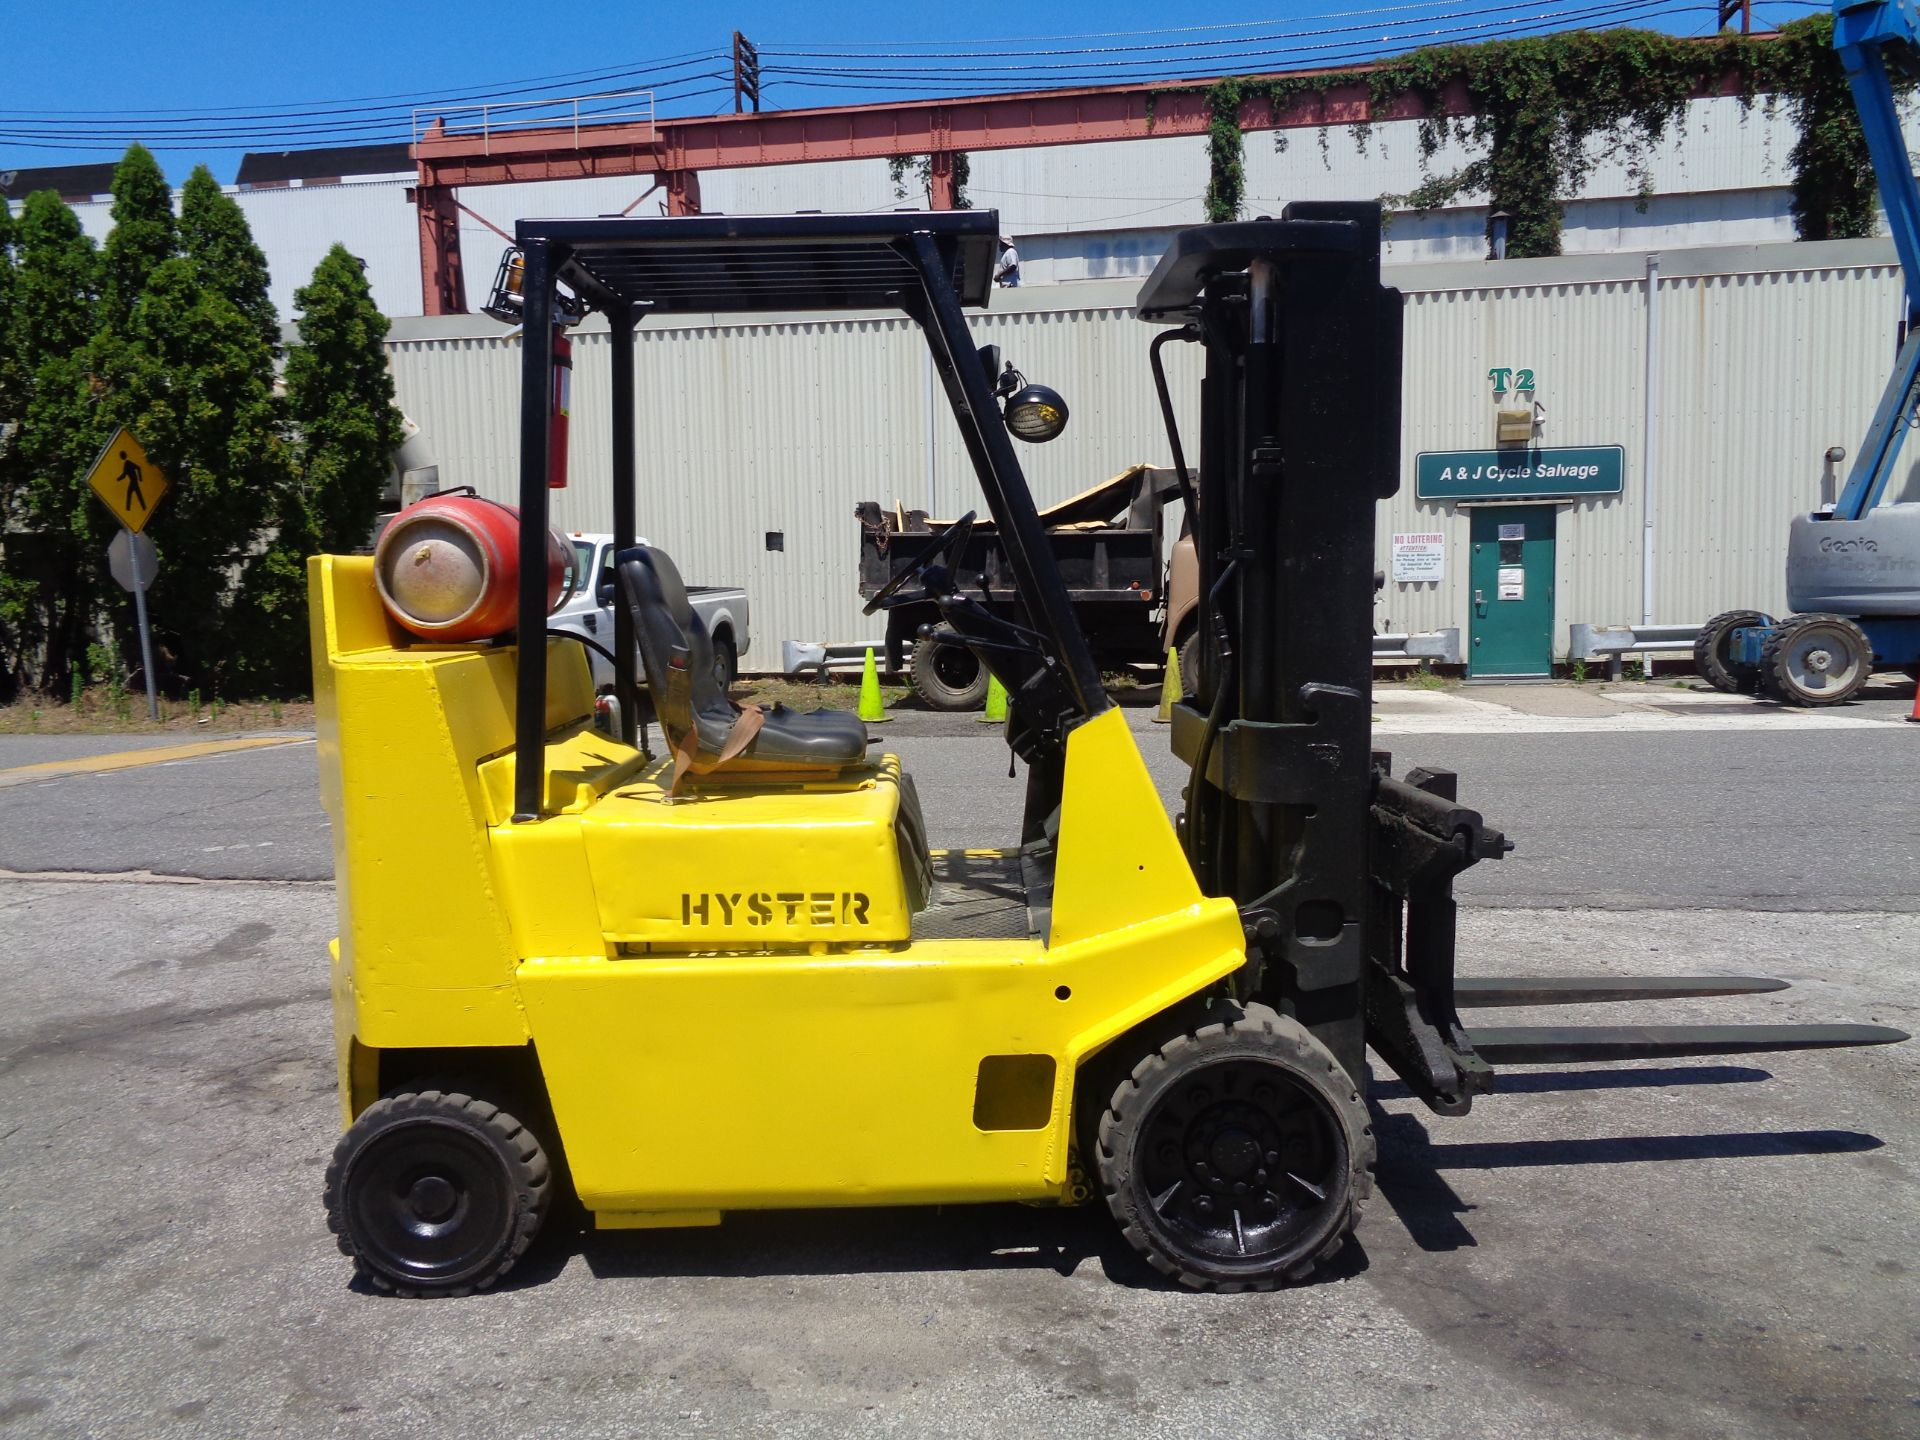 Hyster S80XL 8,000 lbs Forklift - Image 11 of 13